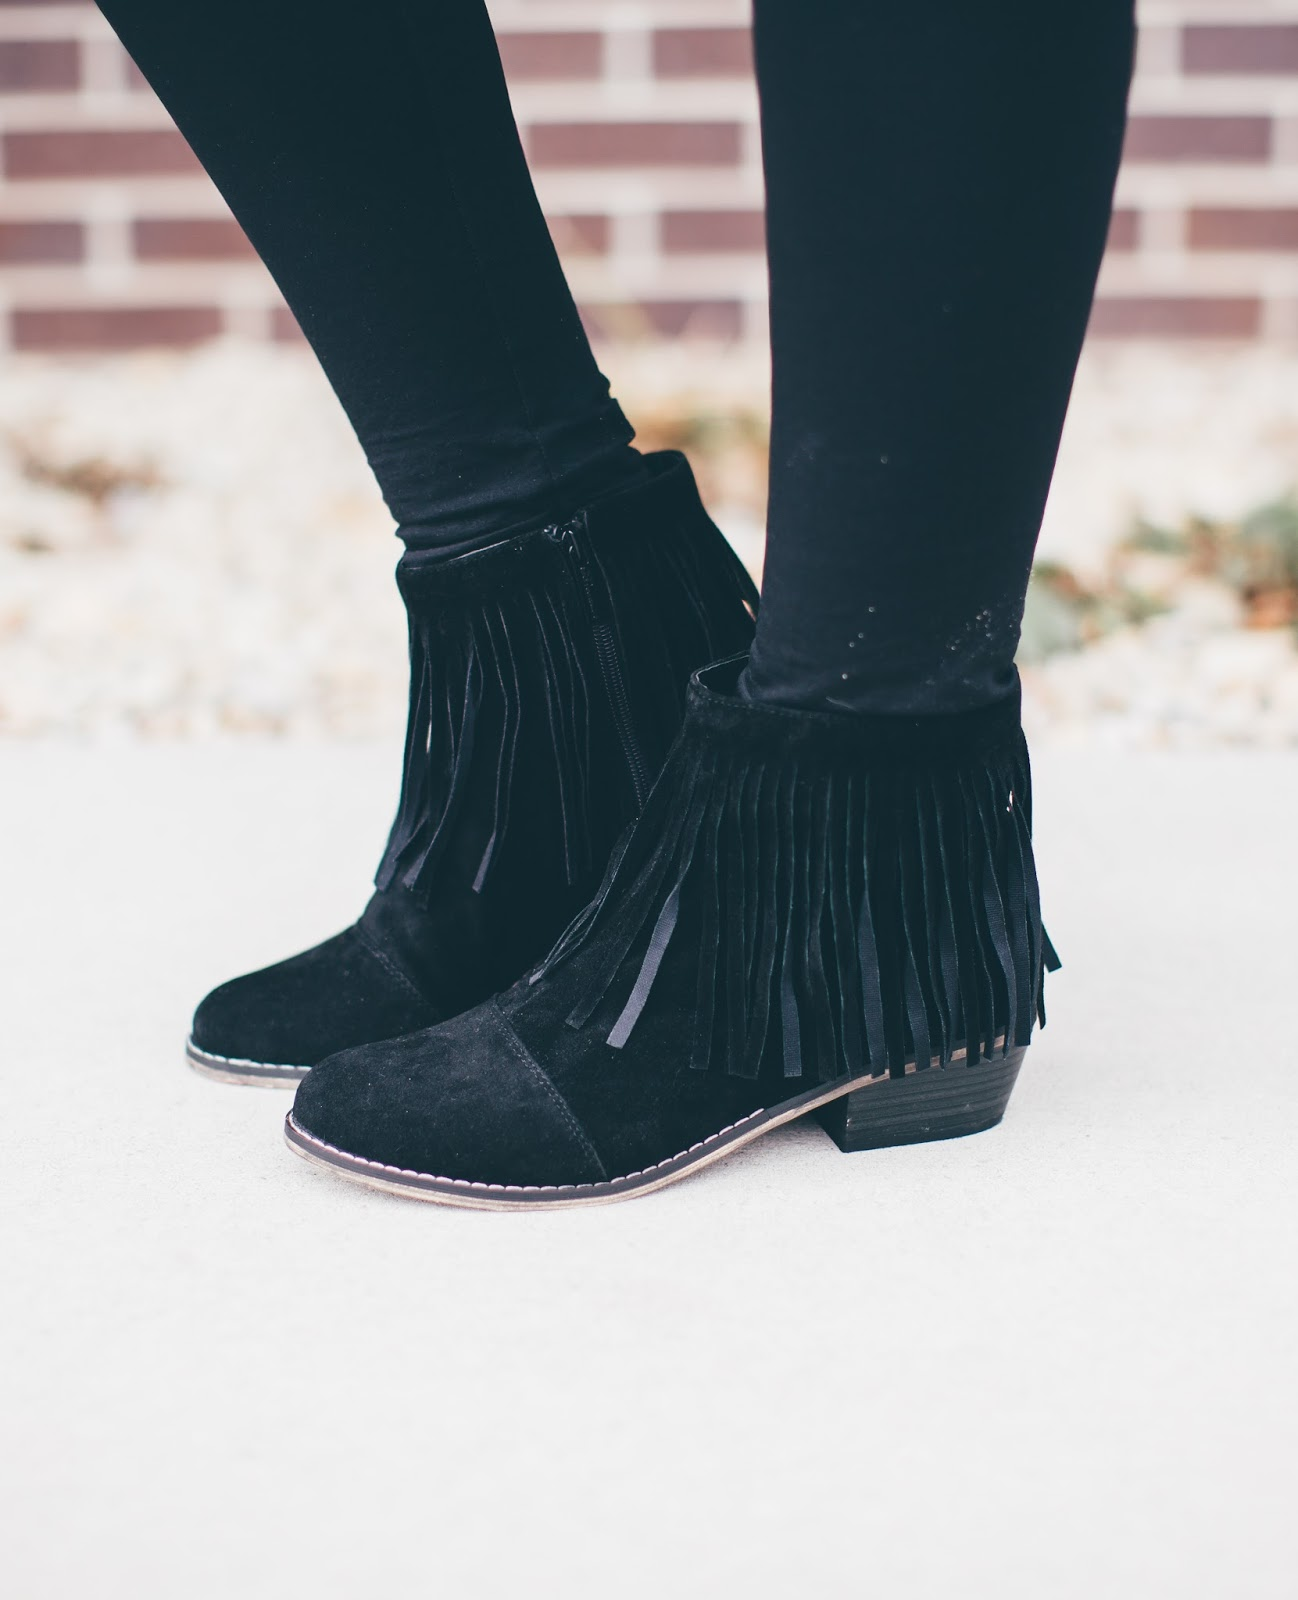 Fringe Booties, Fall Booties, Paige Avenue